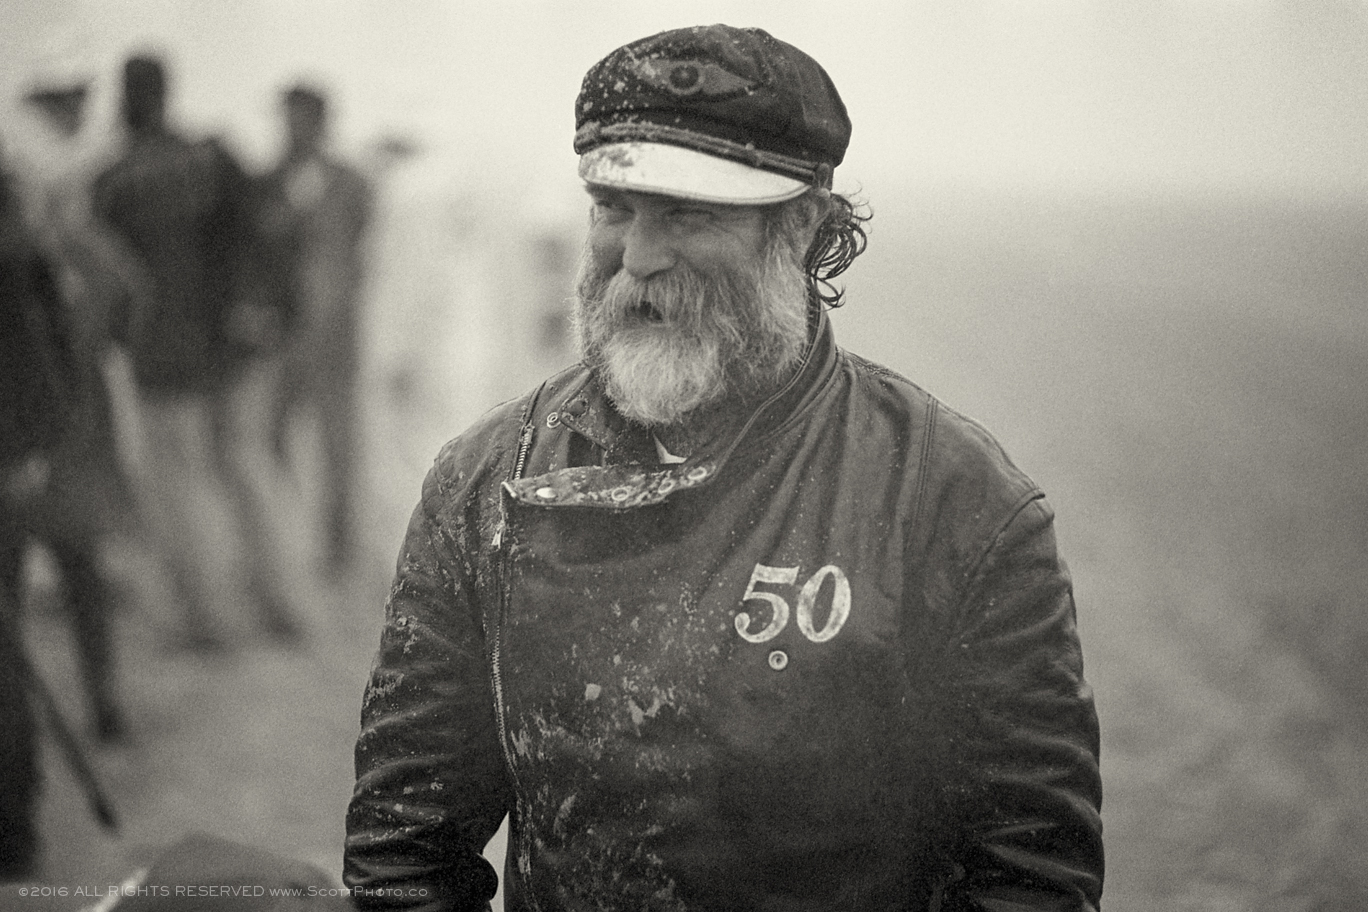 One of original gentlemen and founders of The Race of Gentlemen Mr. Mel Stultz near the end of the day Saturday.